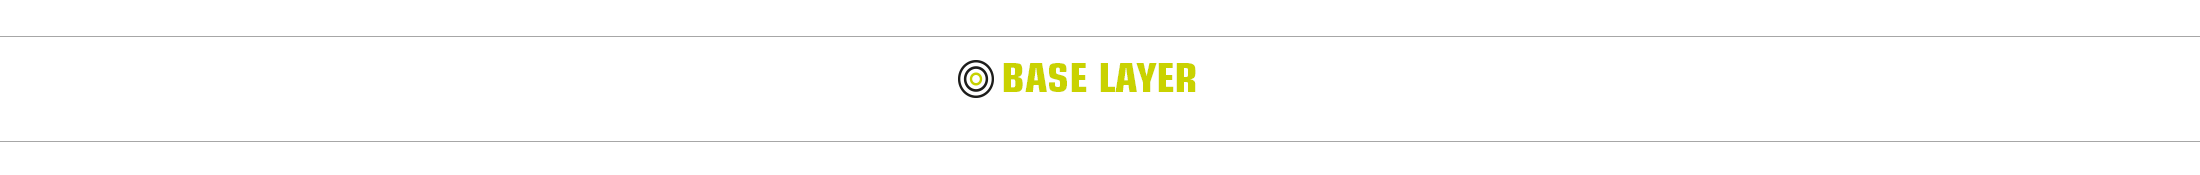 Base layer - moisture removal